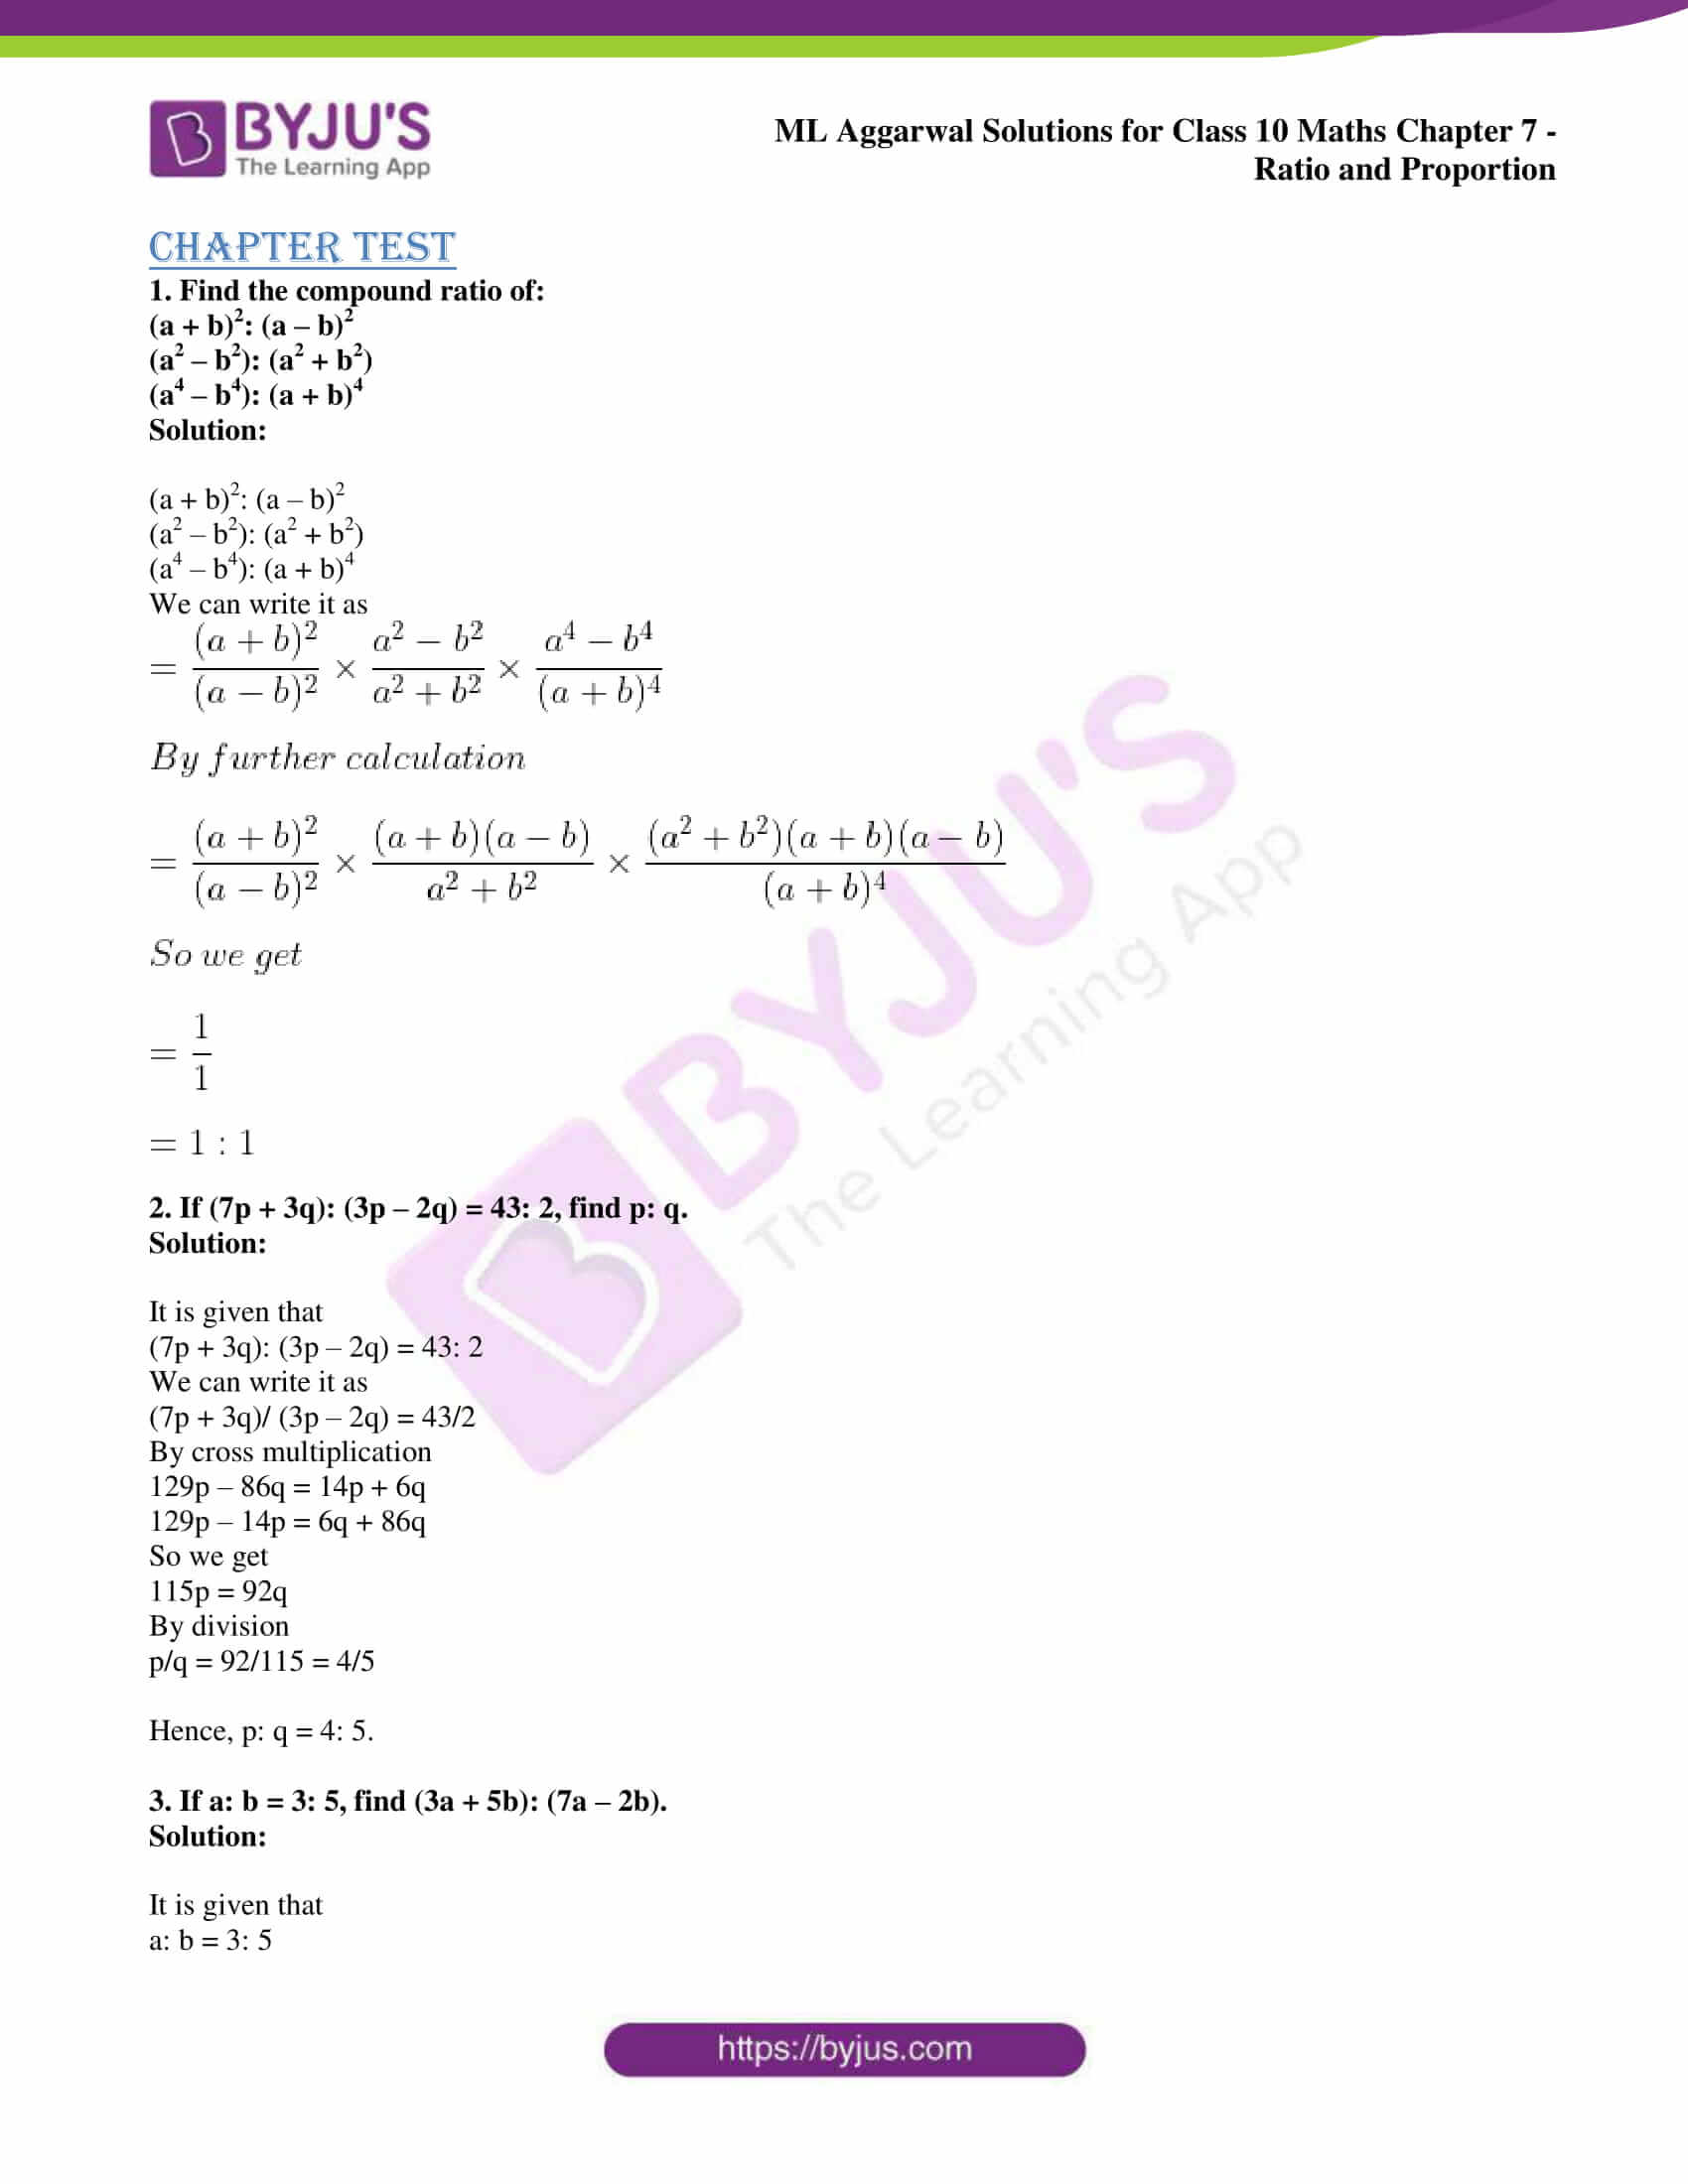 ml aggarwal solutions for class 10 maths chapter 7 69